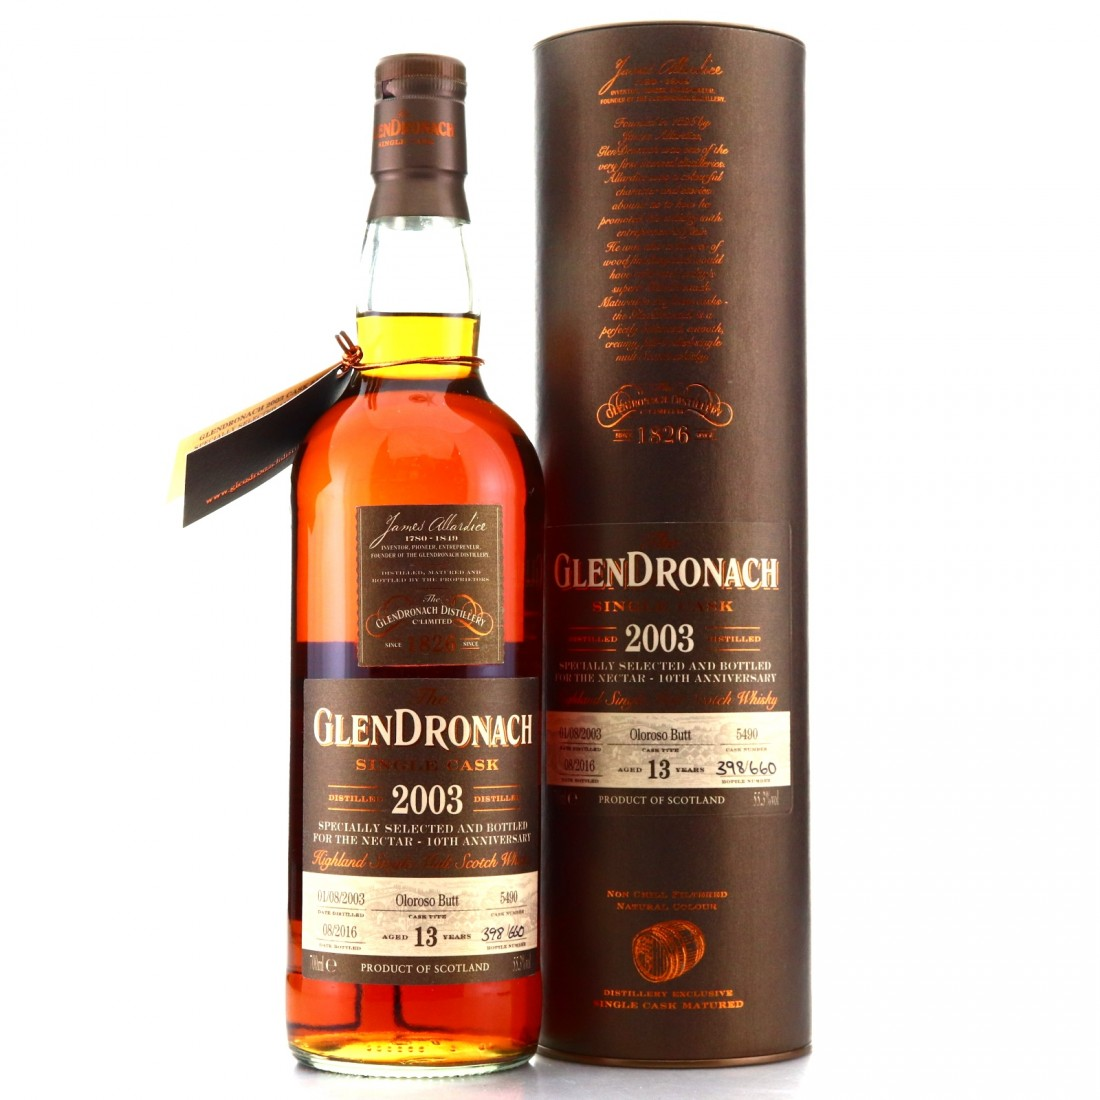 Glendronach 2003 Single Cask 13 Year Old #5490 / The Nectar 10th Anniversary